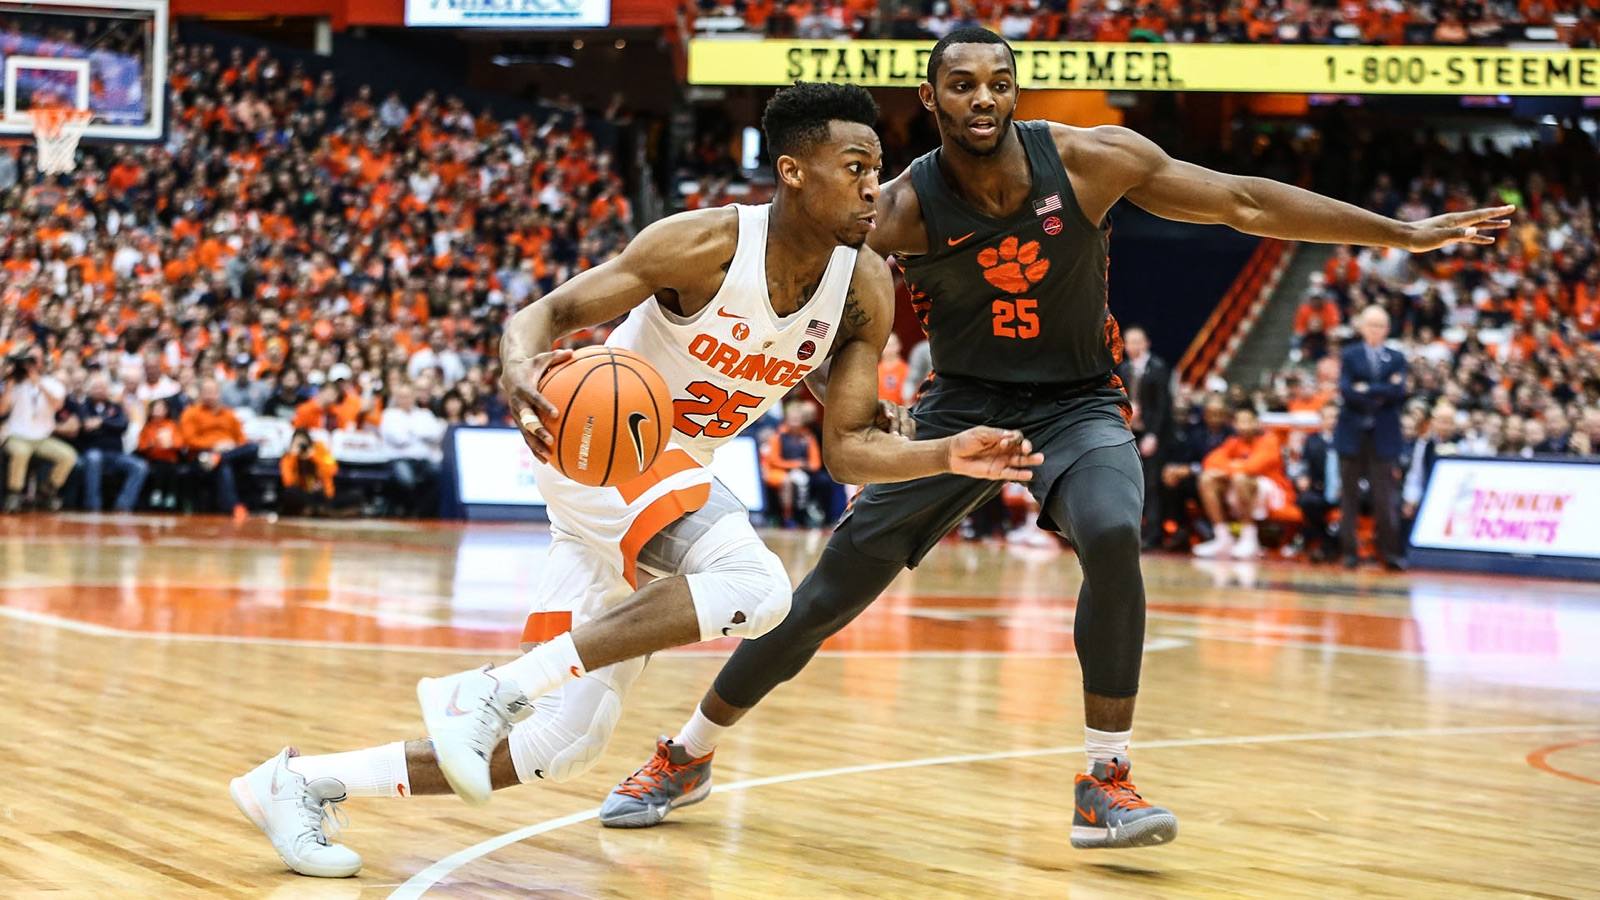 Orange Edges 18 Clemson 55 52 Syracuse University Athletics